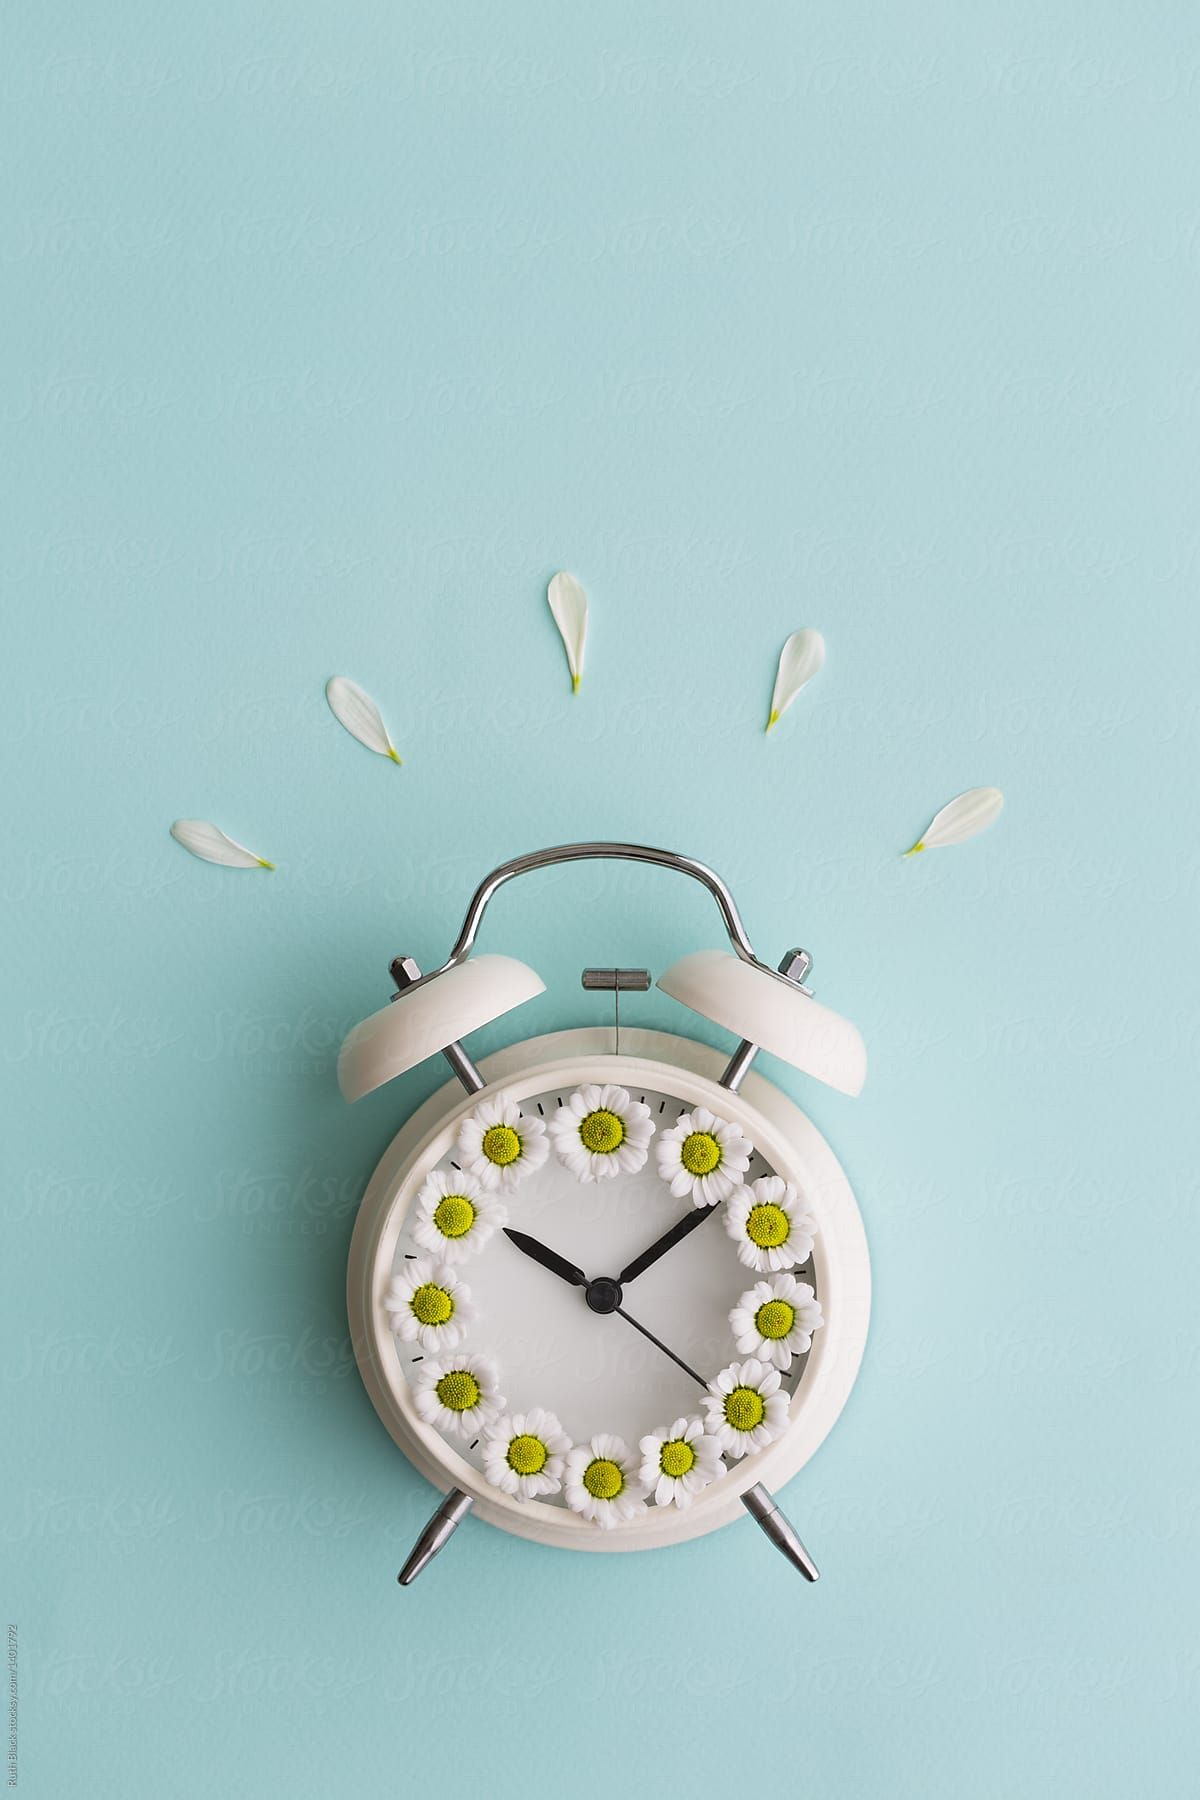 Alarm Clock With Daisies Download This High Resolution Stock Photo By Ruth Black From Stocksy United Alarm Clock Clock Wallpaper Clock